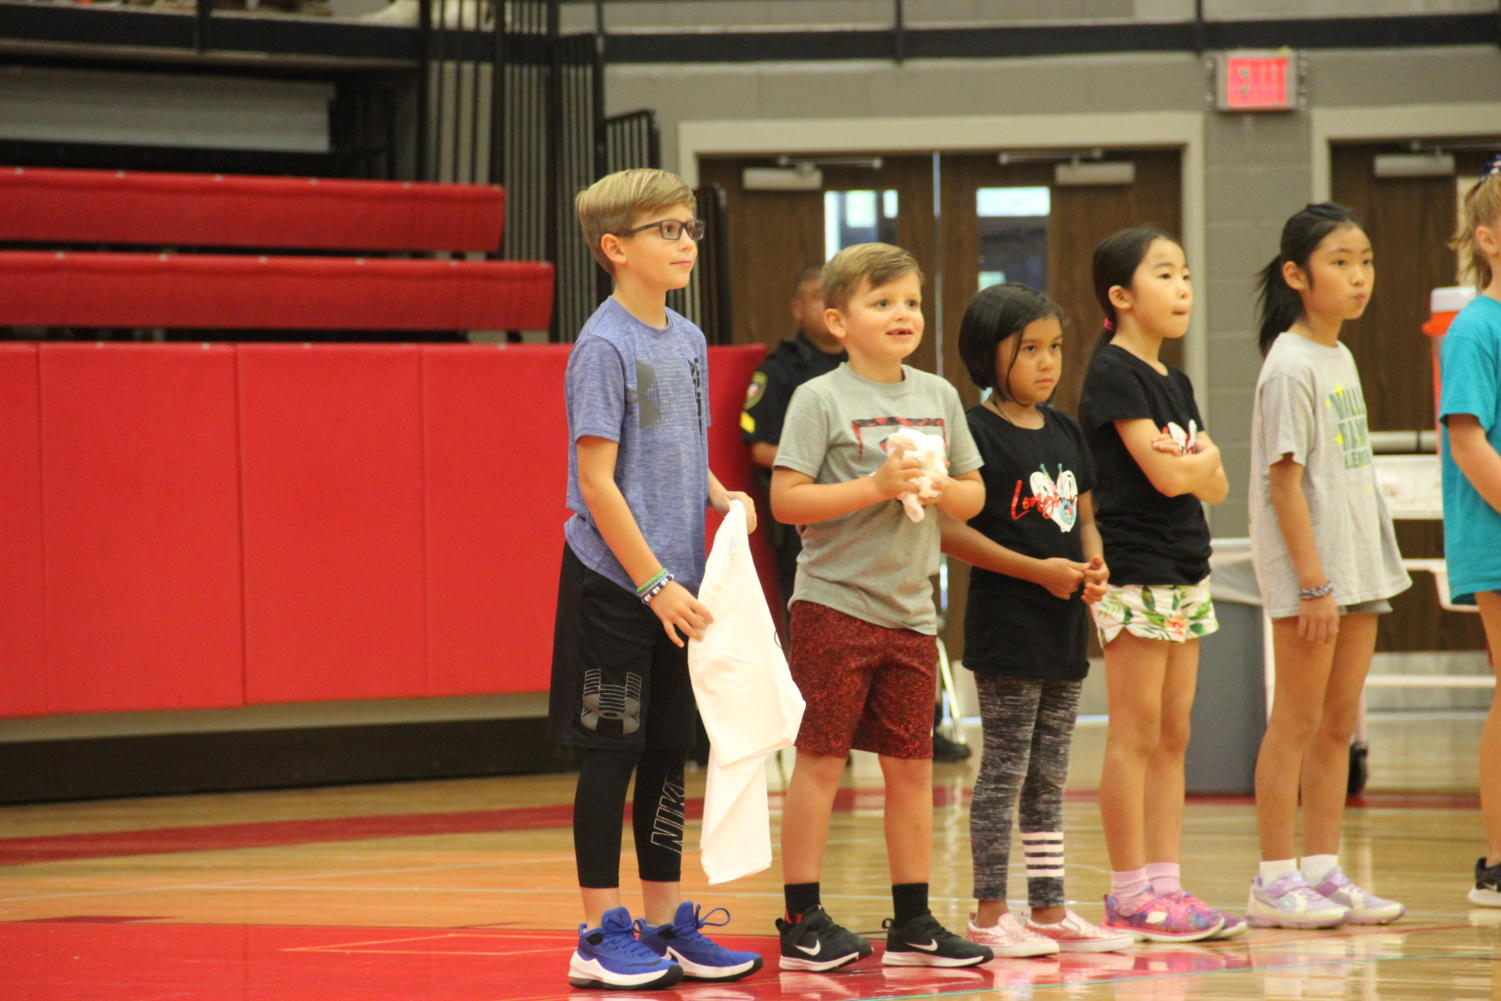 Elementary+school+students+celebrate+after+winning+T-shirts+from+successfully+serving.+The+Coppell+volleyball+team+hosted+Elementary+Night+on+Tuesday+in+the+CHS+Arena+before+the+varsity+match+against+Arlington+Martin.